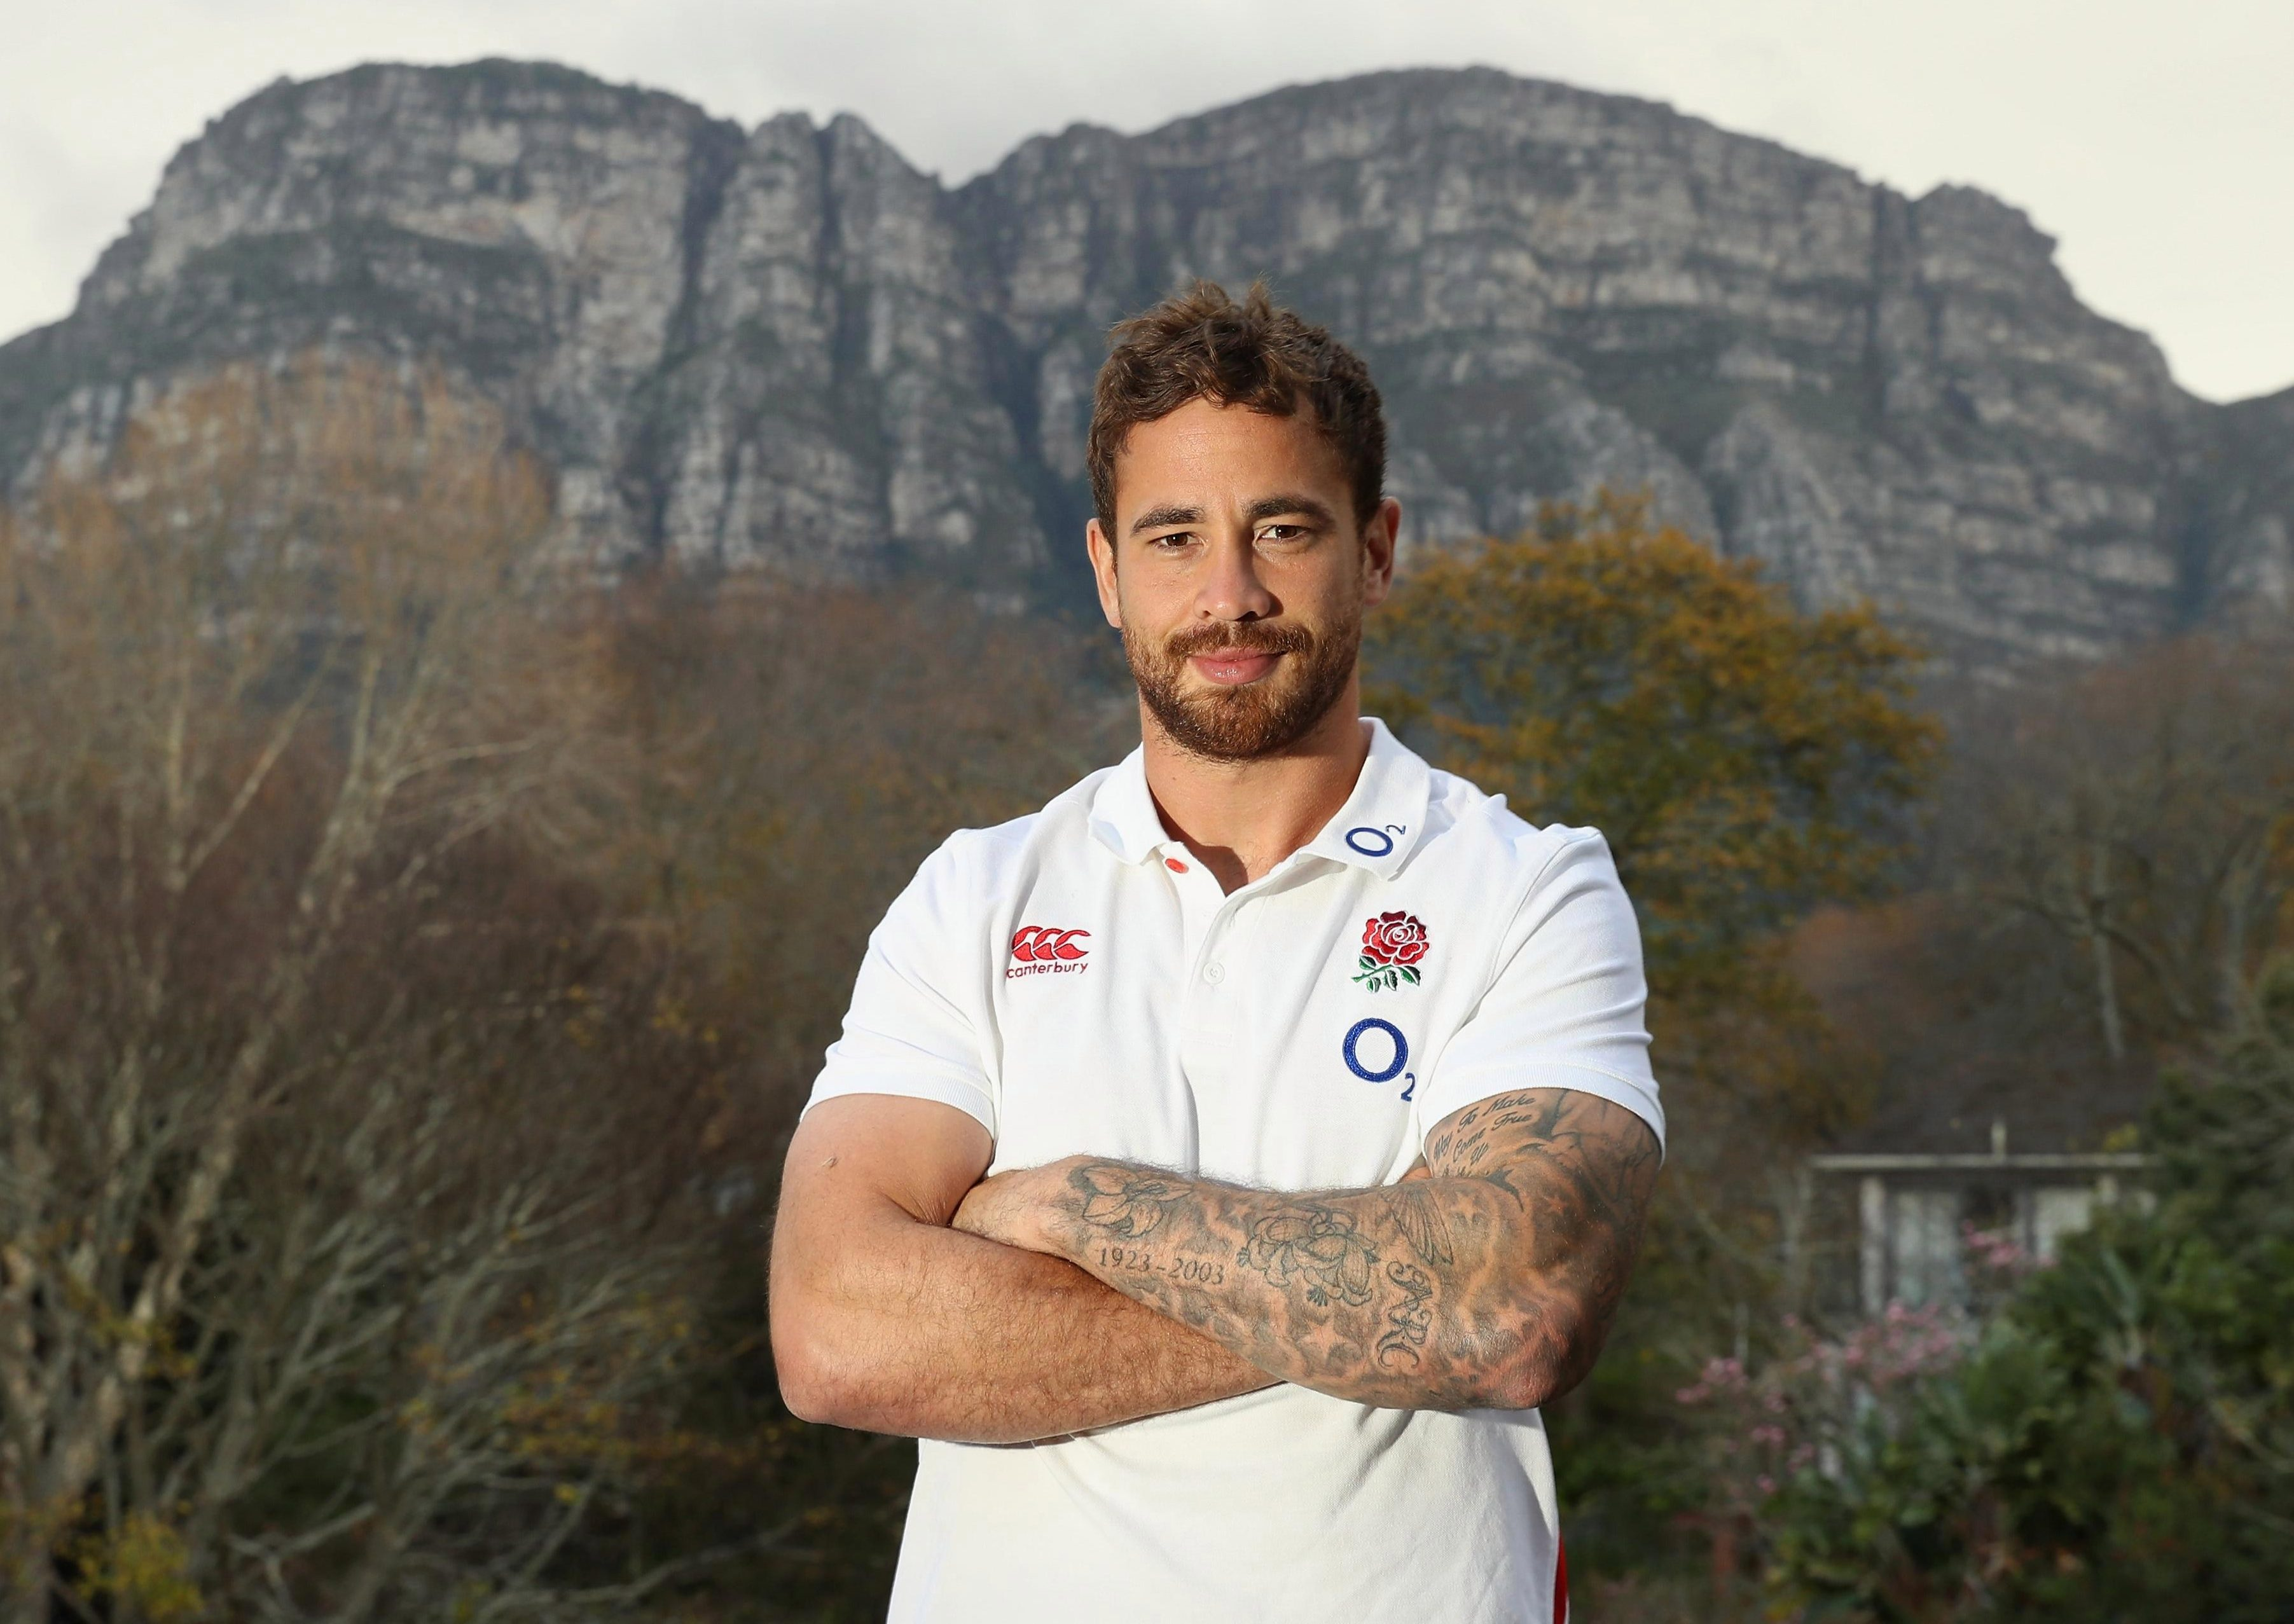 Bad-boy turned saviour Danny Cipriani saved England and Eddie Jones in Cape Town this summer